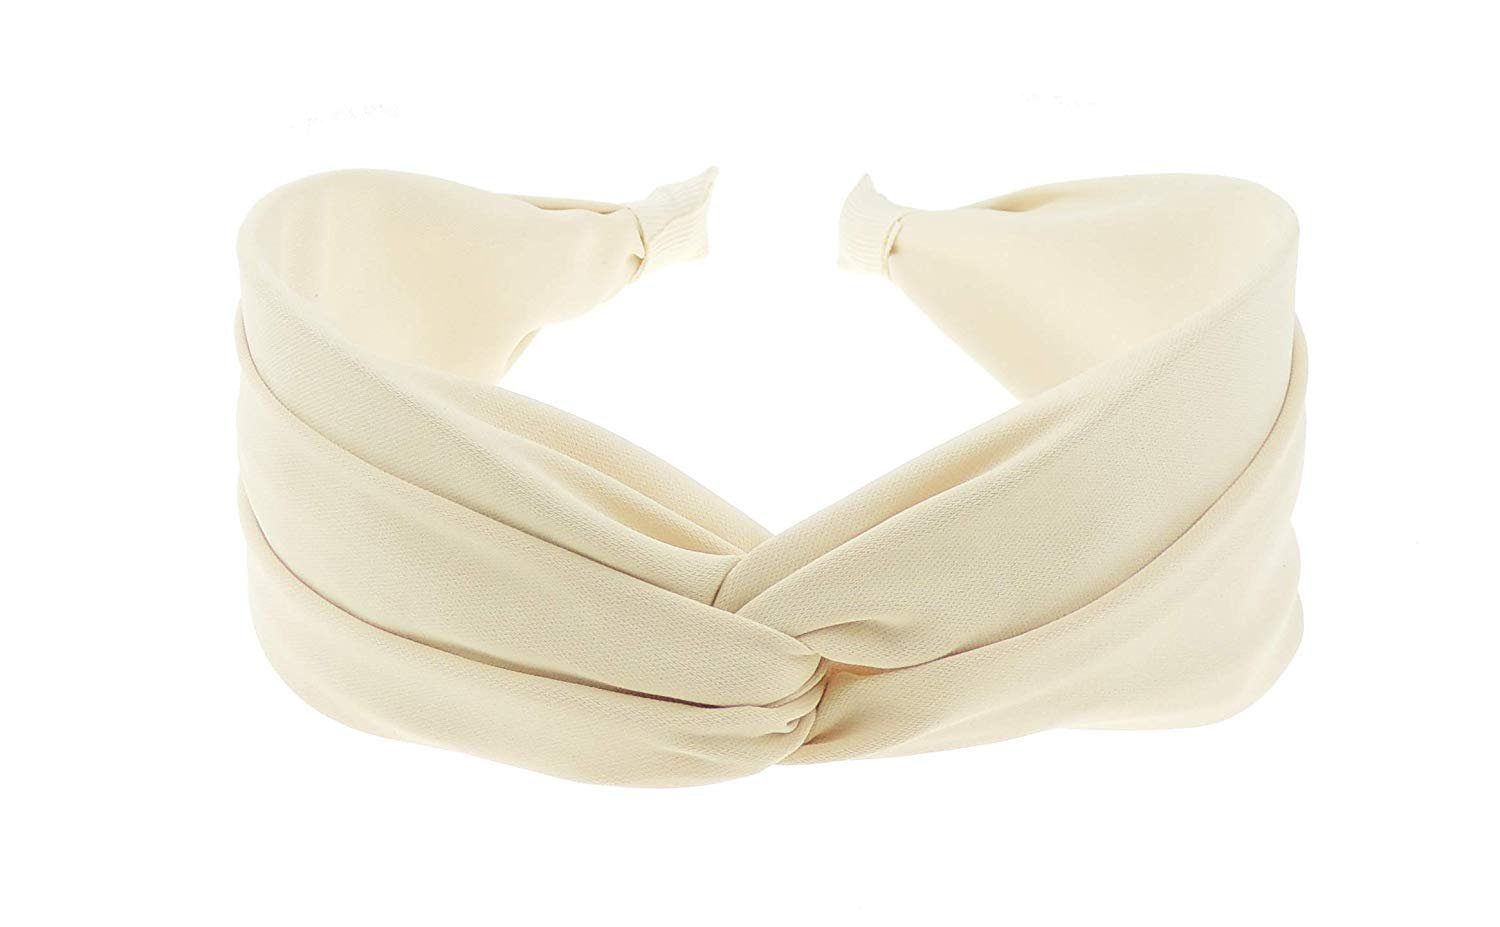 CRINKLED LEATHER LOOK FABRIC COVERED 3cm WIDE ALICE HEAD BAND HEADBAND ALICEBAND